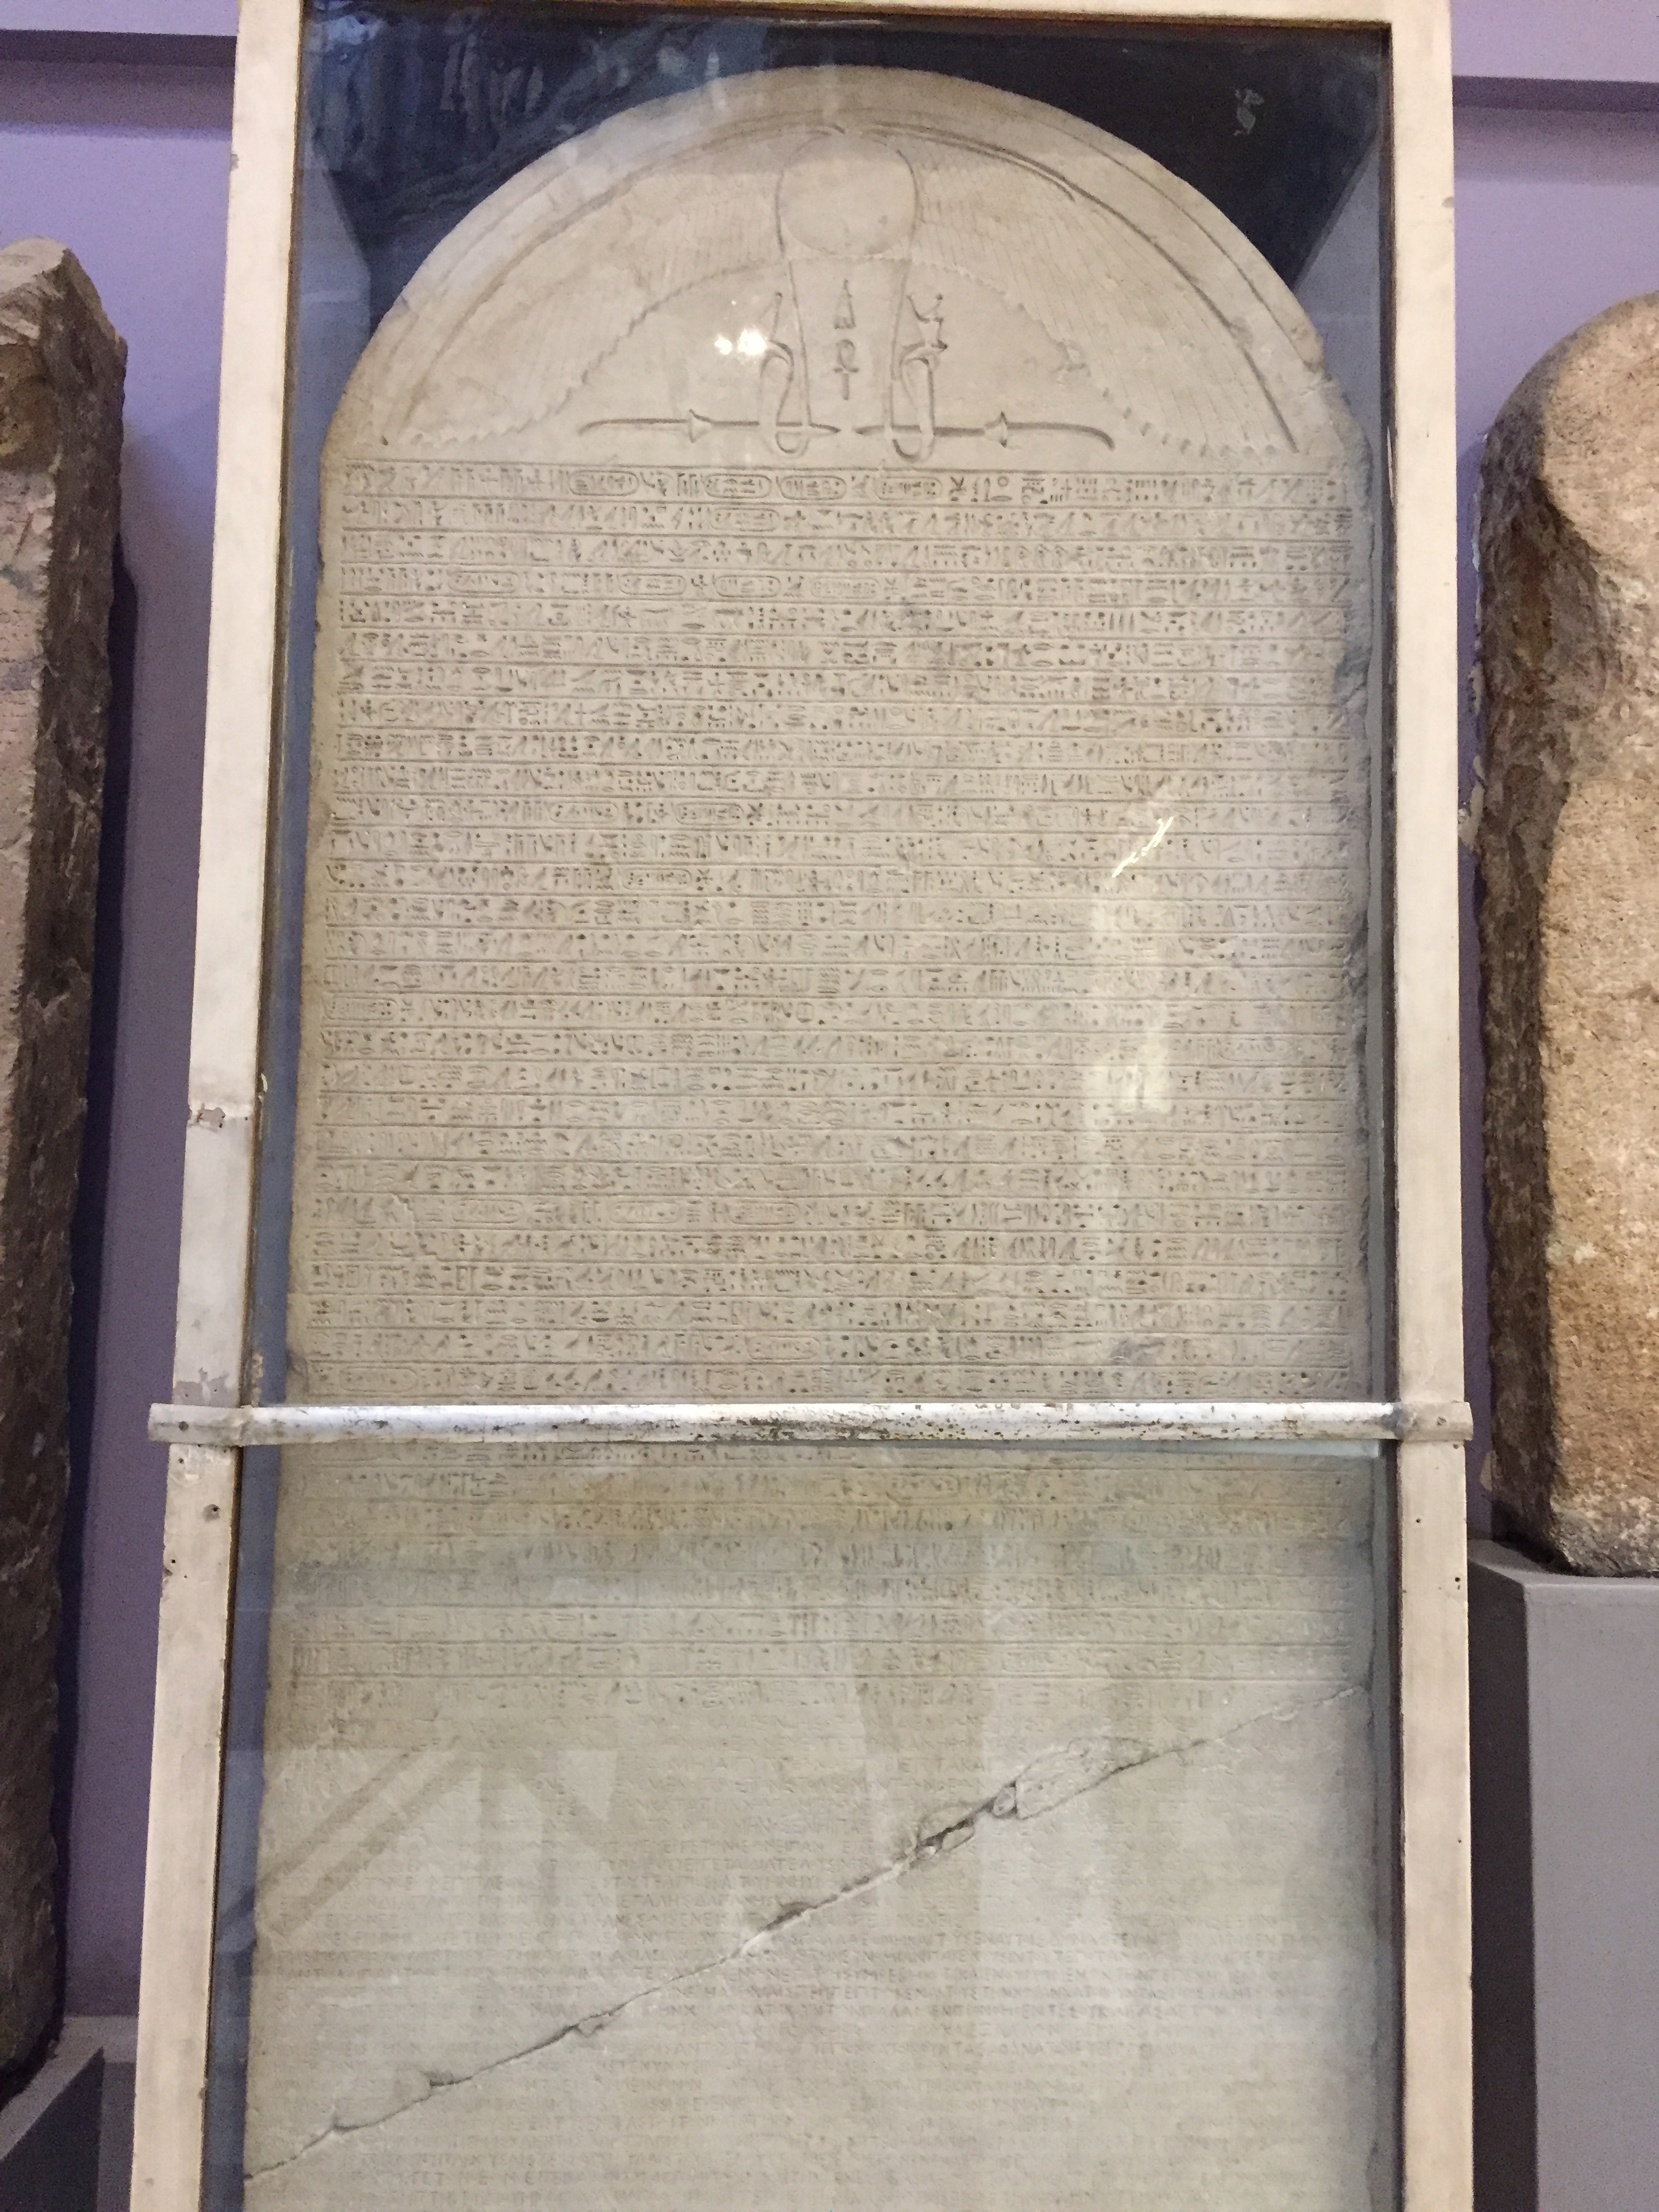 The Egyptian Museum guards told us that this was the Rosetta Stone, but some Googling confirmed that the actual stone sits in the British Museum in London.  ¯\_(ツ)_/¯